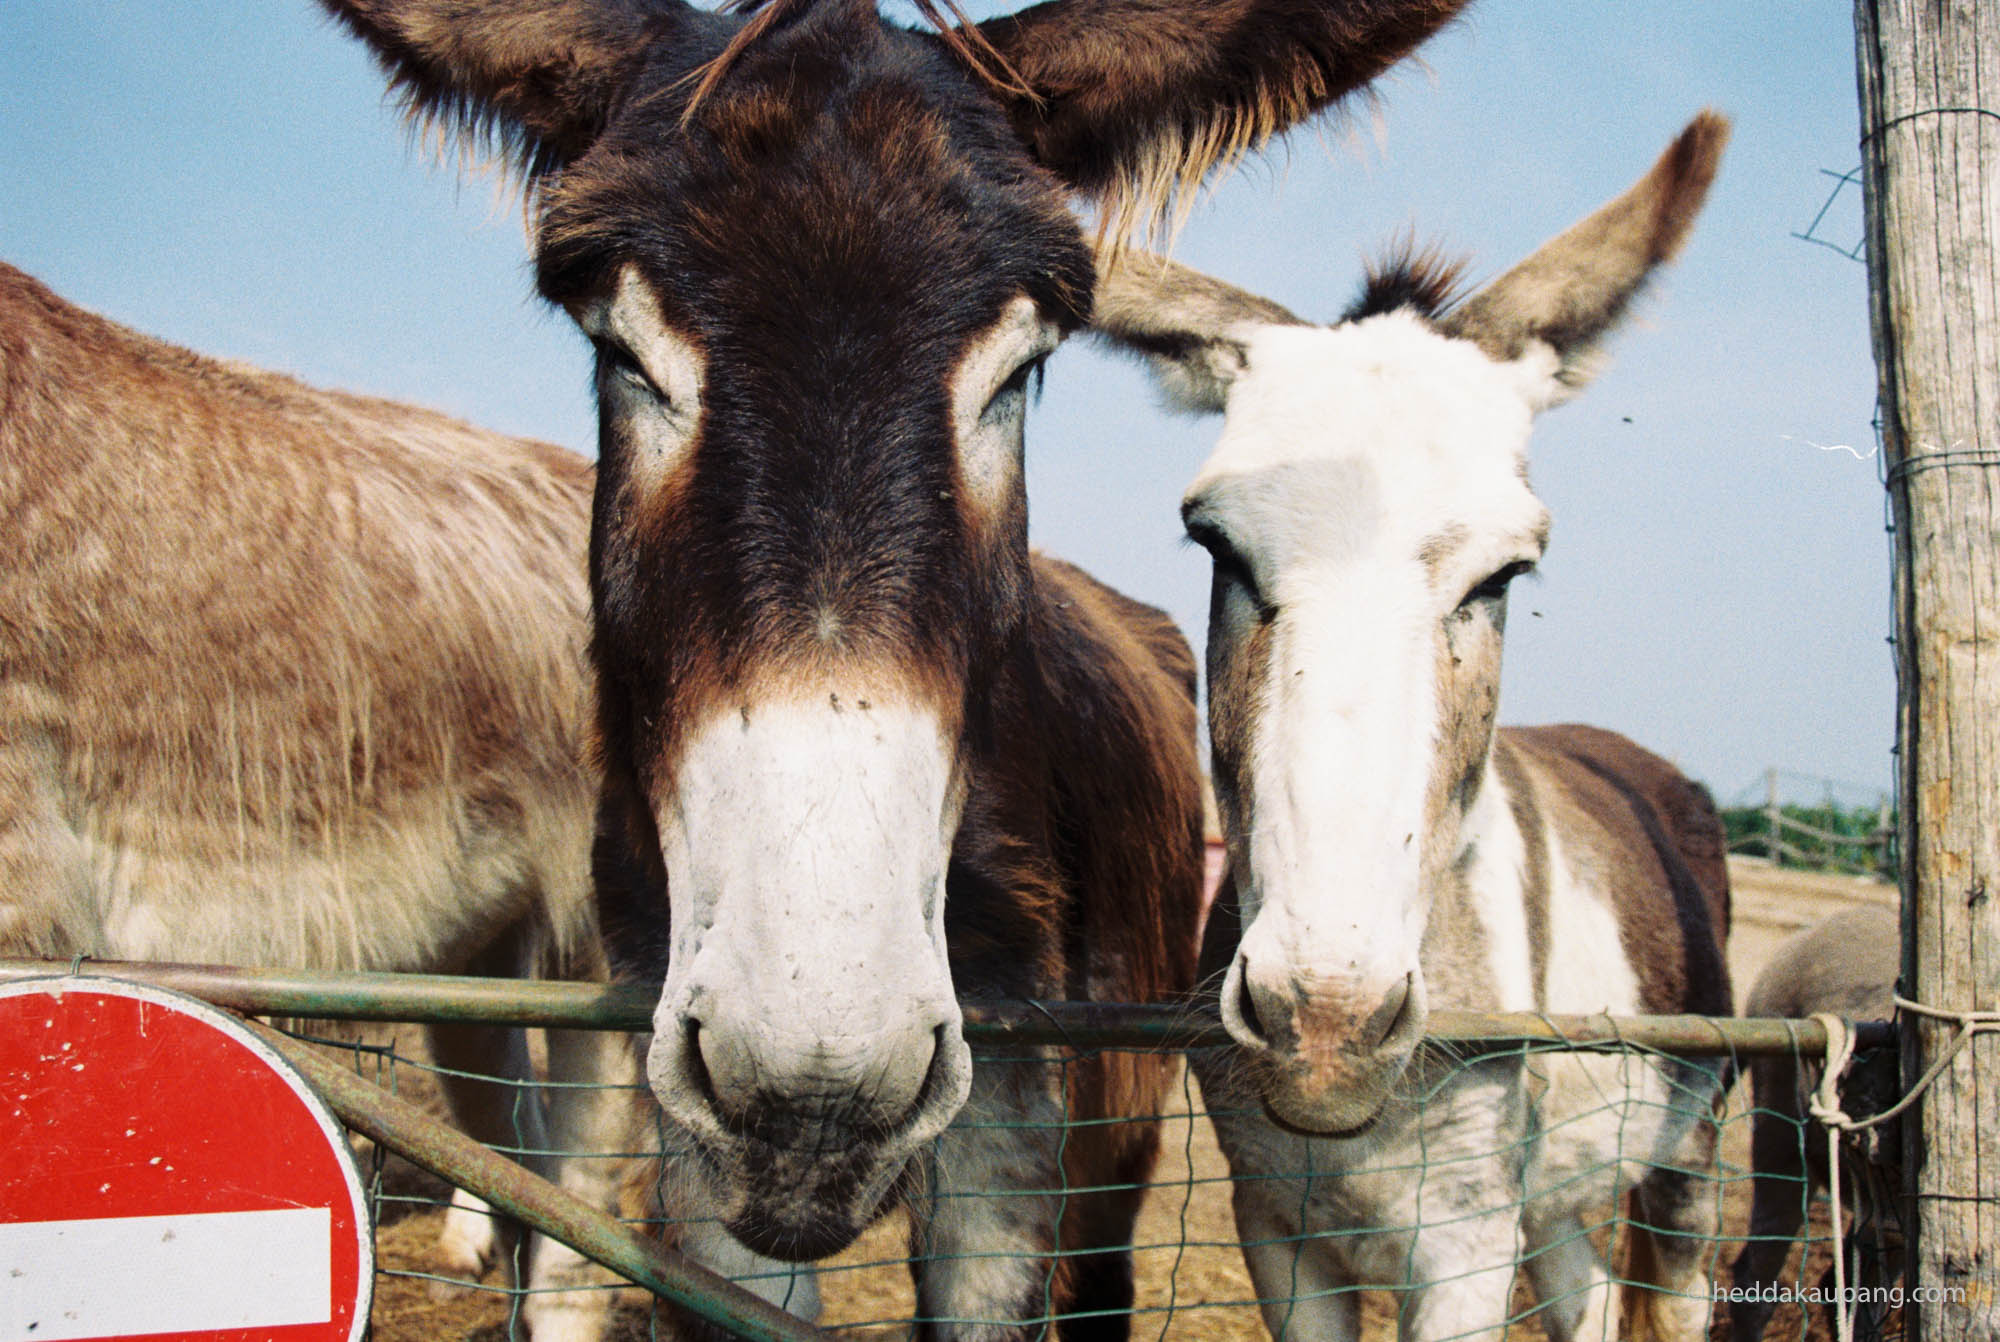 Cute donkeys at Carussin.